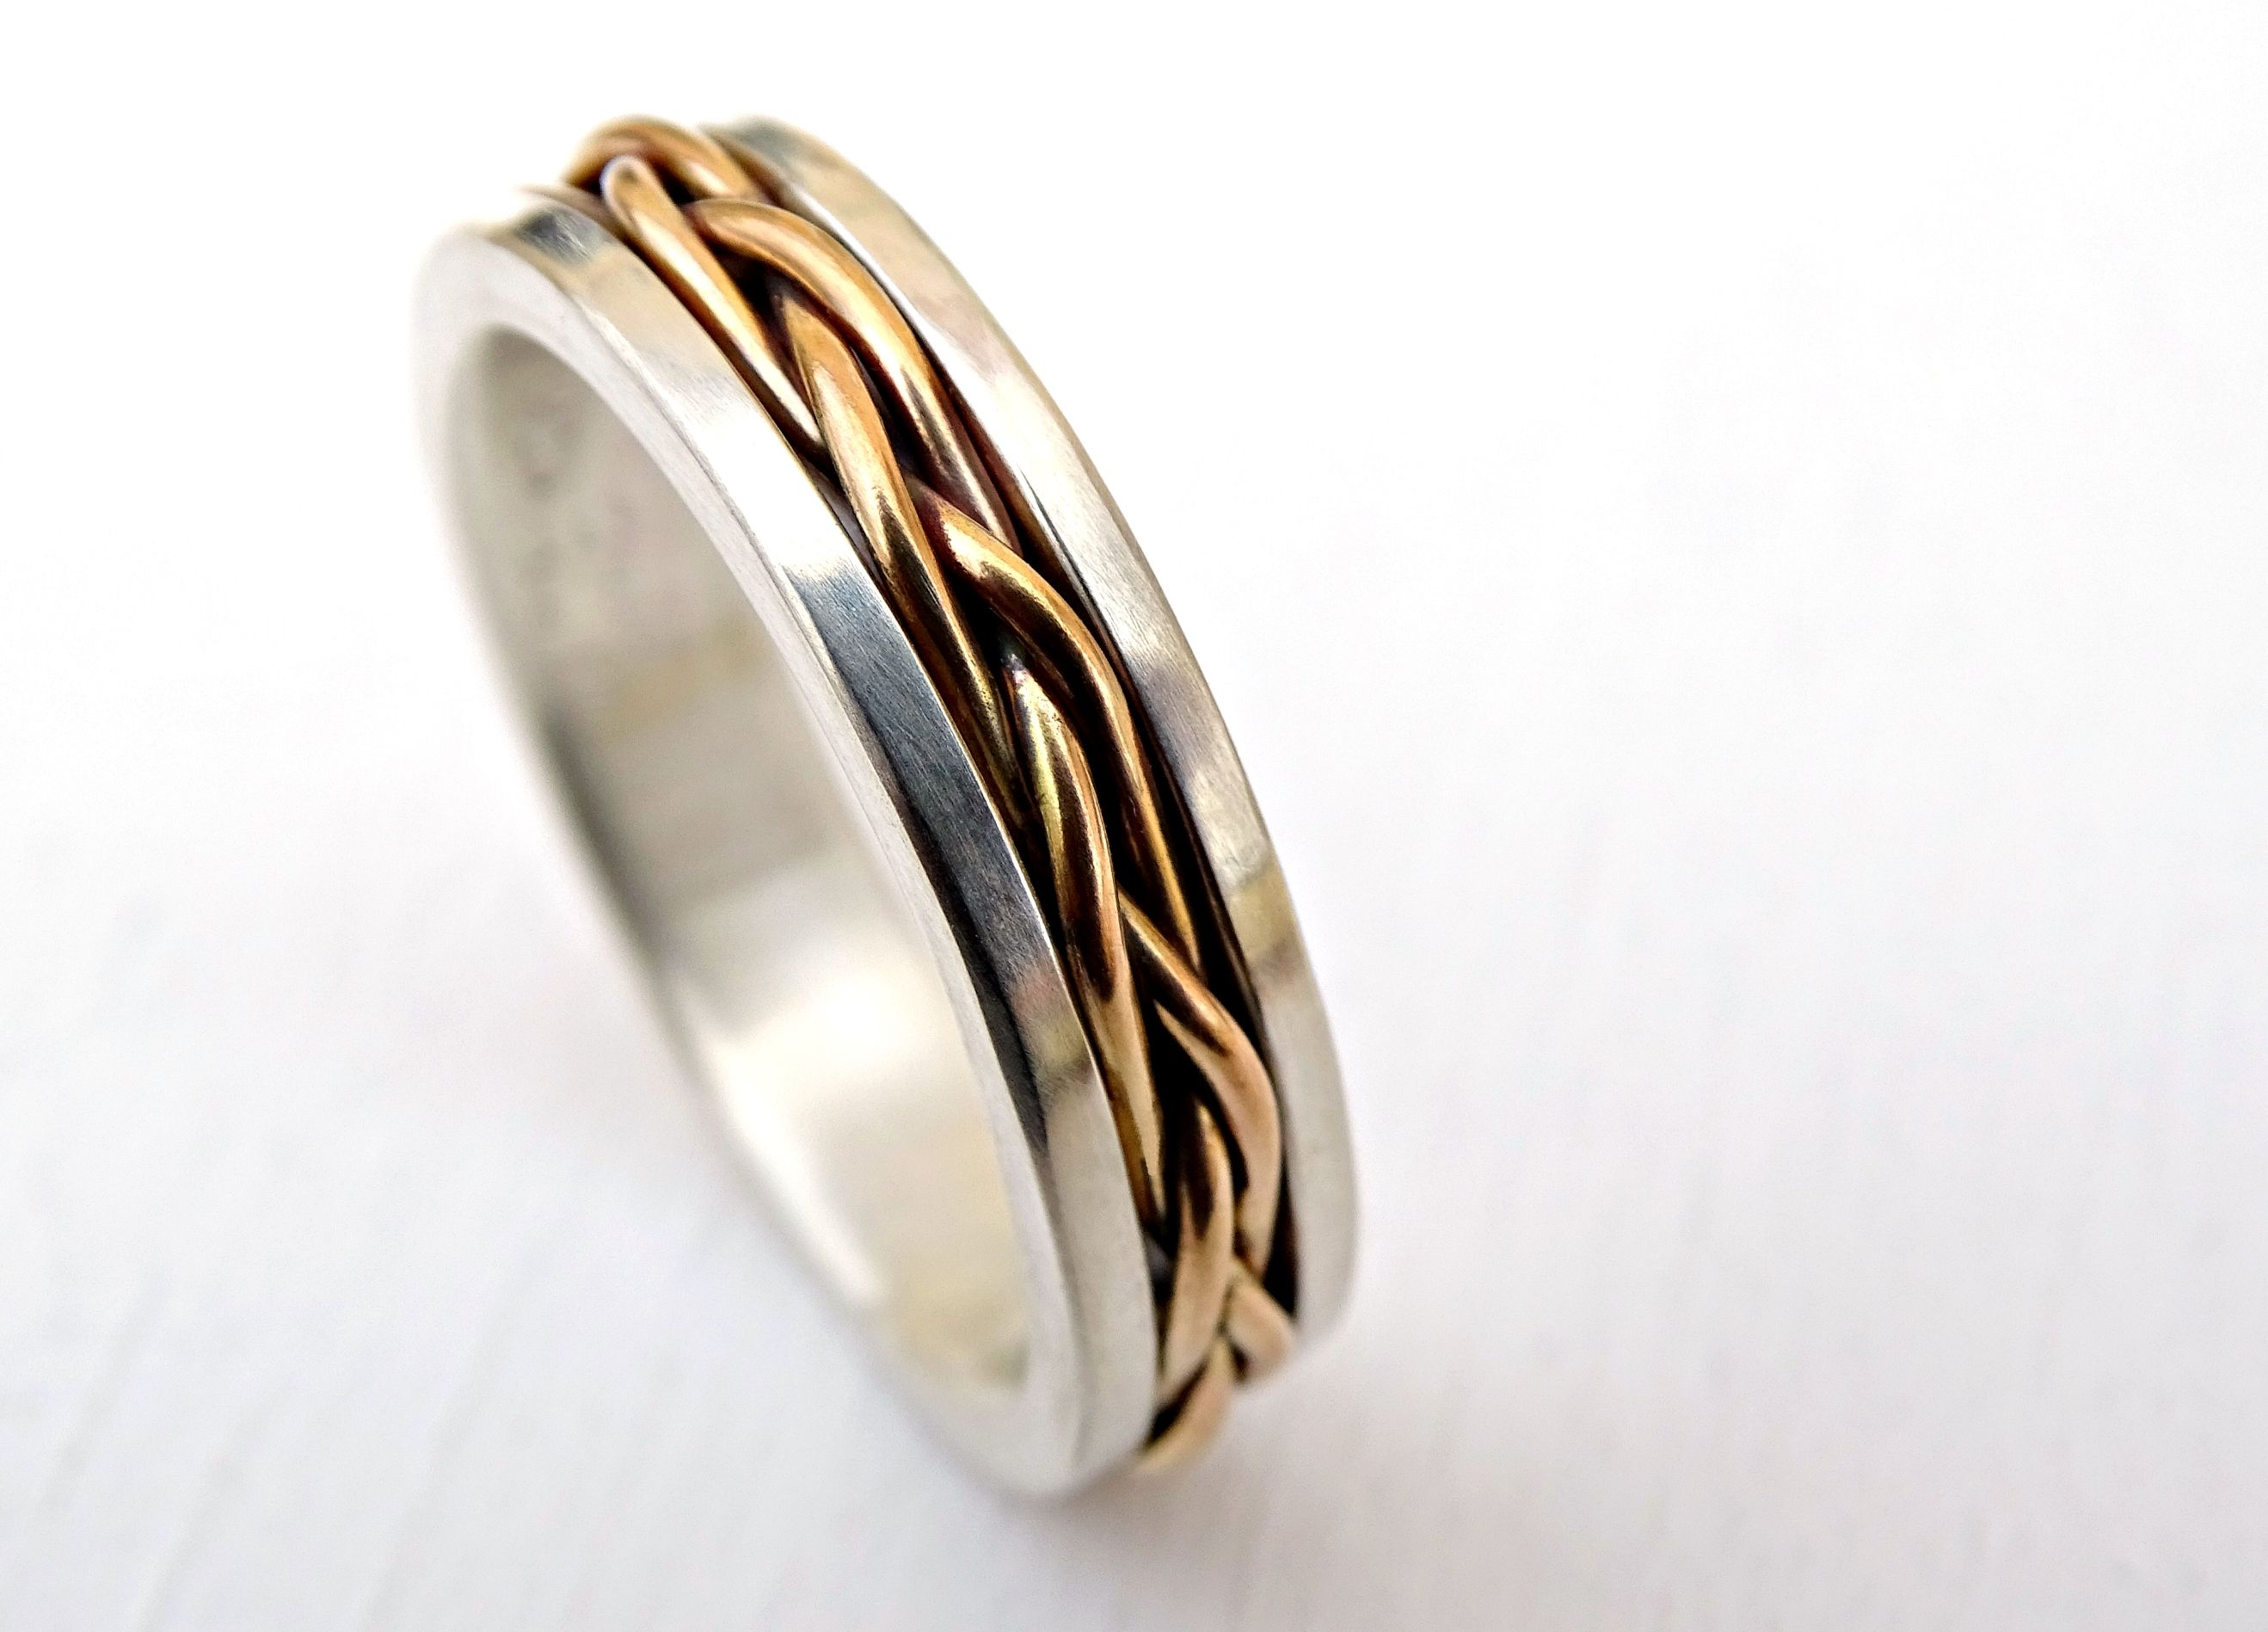 custom made celtic wedding band men gold braided wedding ring viking mens promise ring - Custom Made Wedding Rings